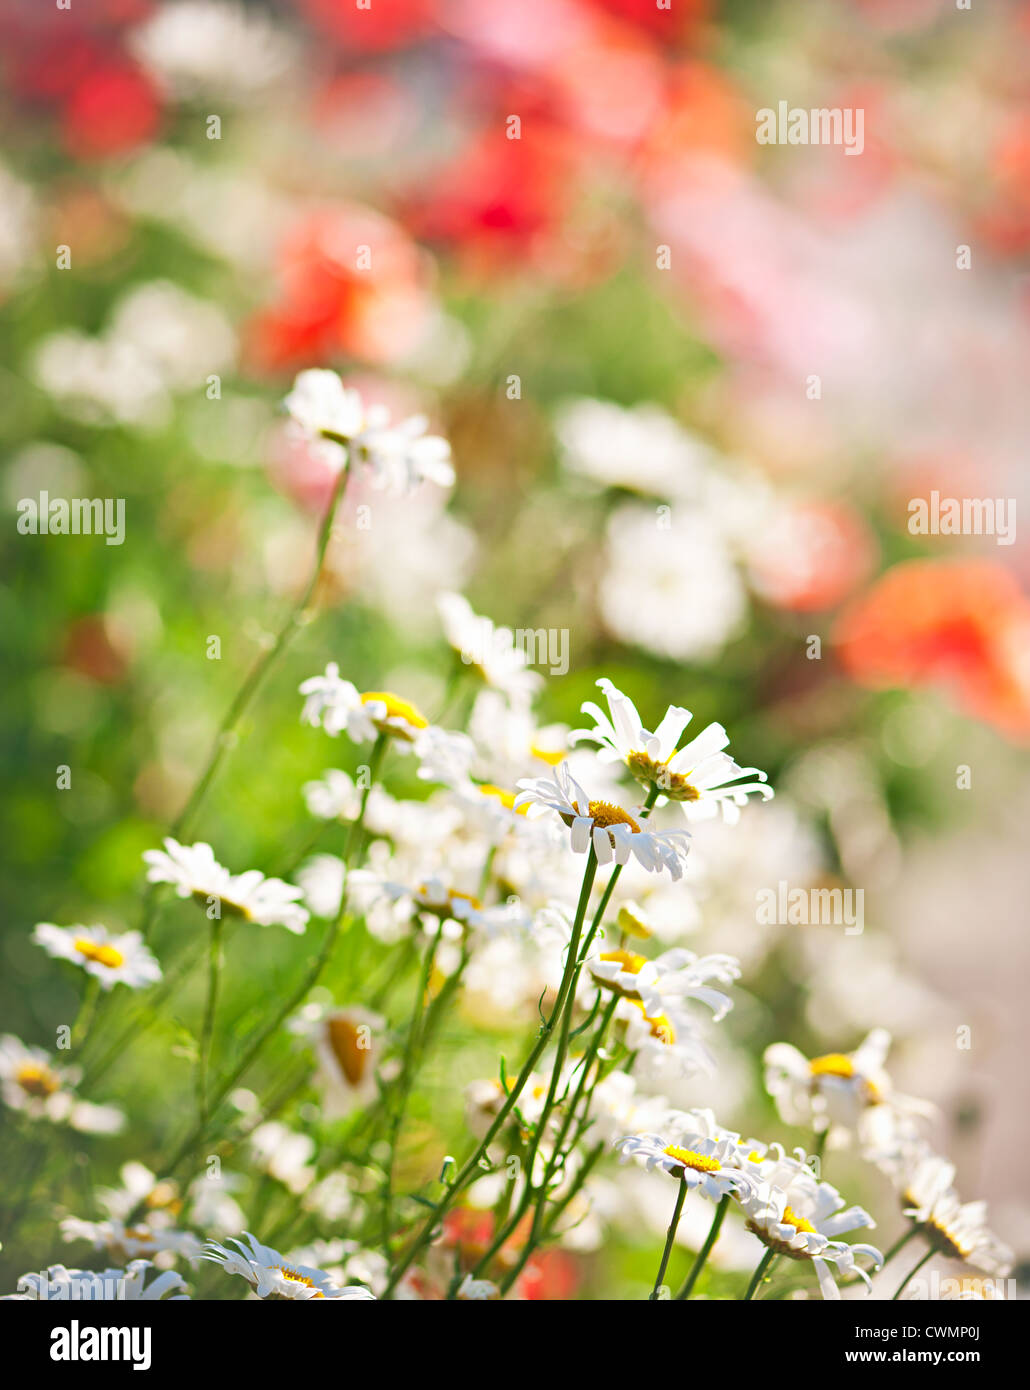 Colorful summer meadow with blooming daisies and poppies - Stock Image